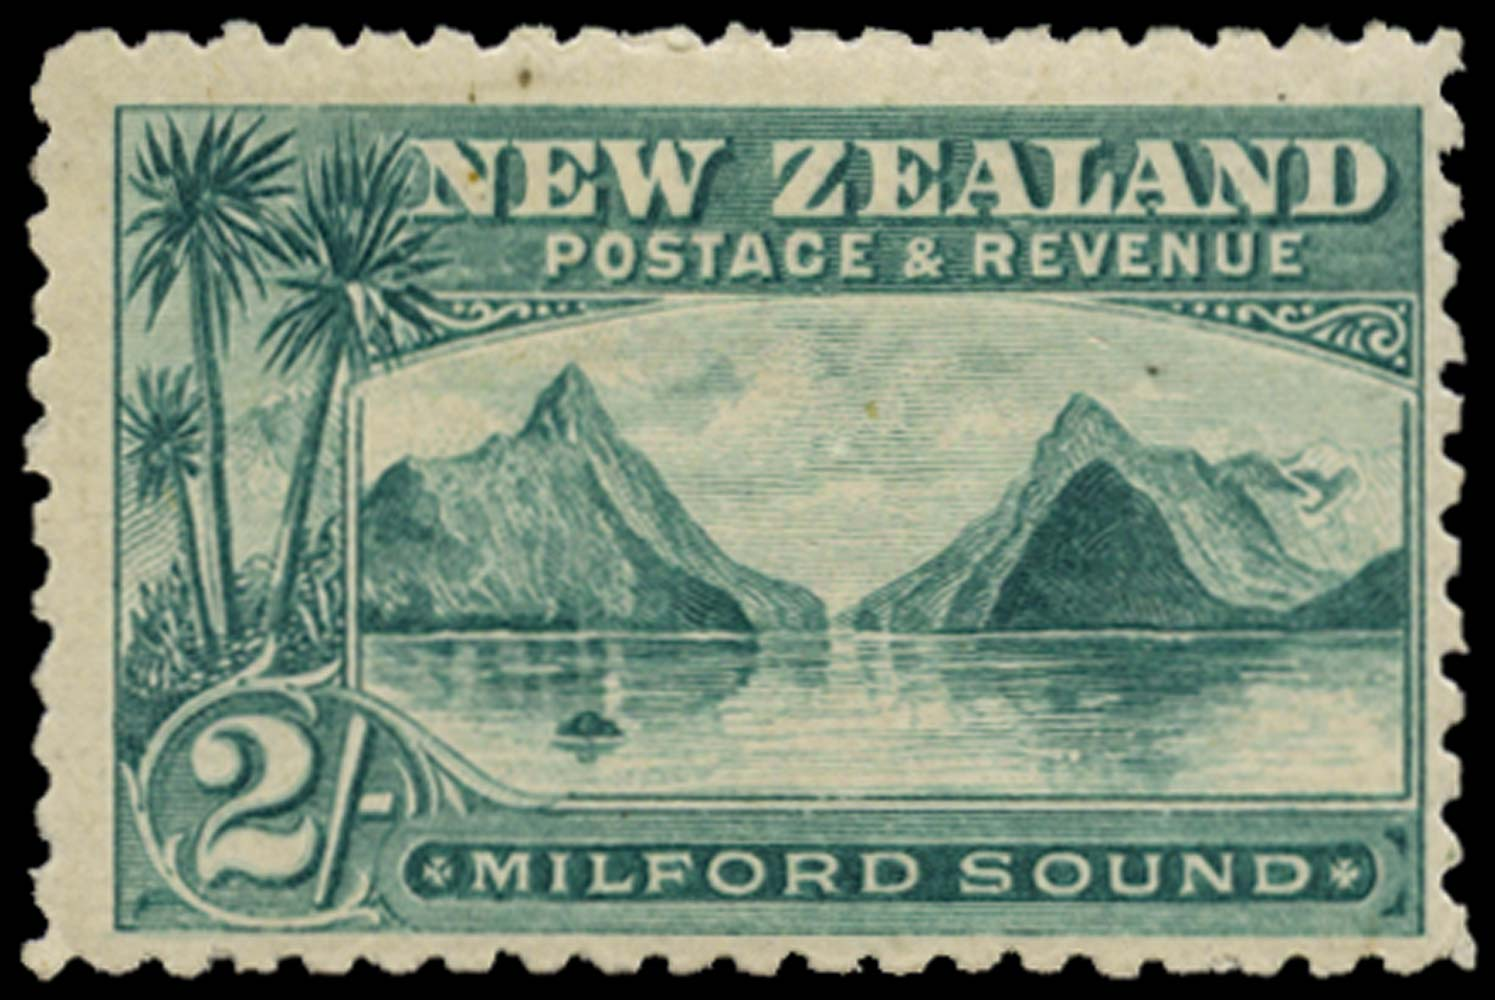 NEW ZEALAND 1899  SG269 Mint 2s blue-green Milford Sound perf 11